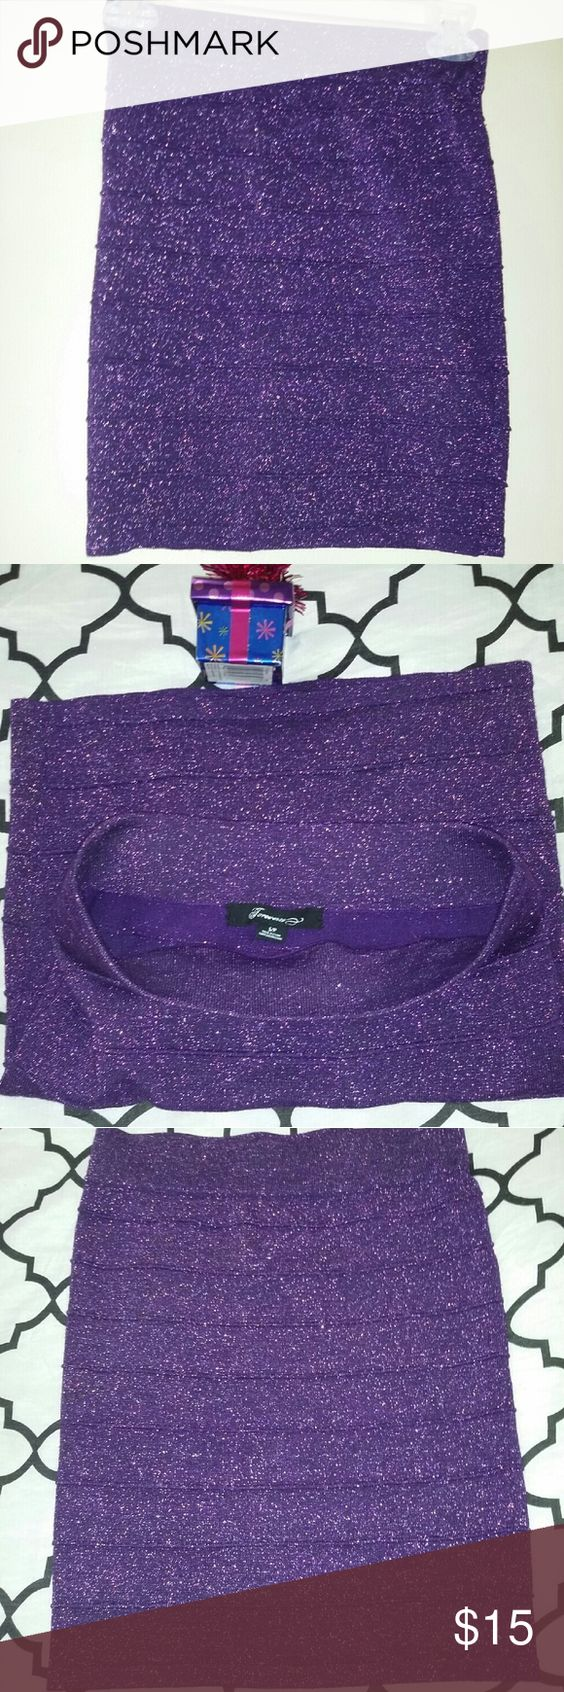 Violet skirt Forever 21 skirt. Great conditon.its a sparkly purple material. Forever 21 Skirts Mini